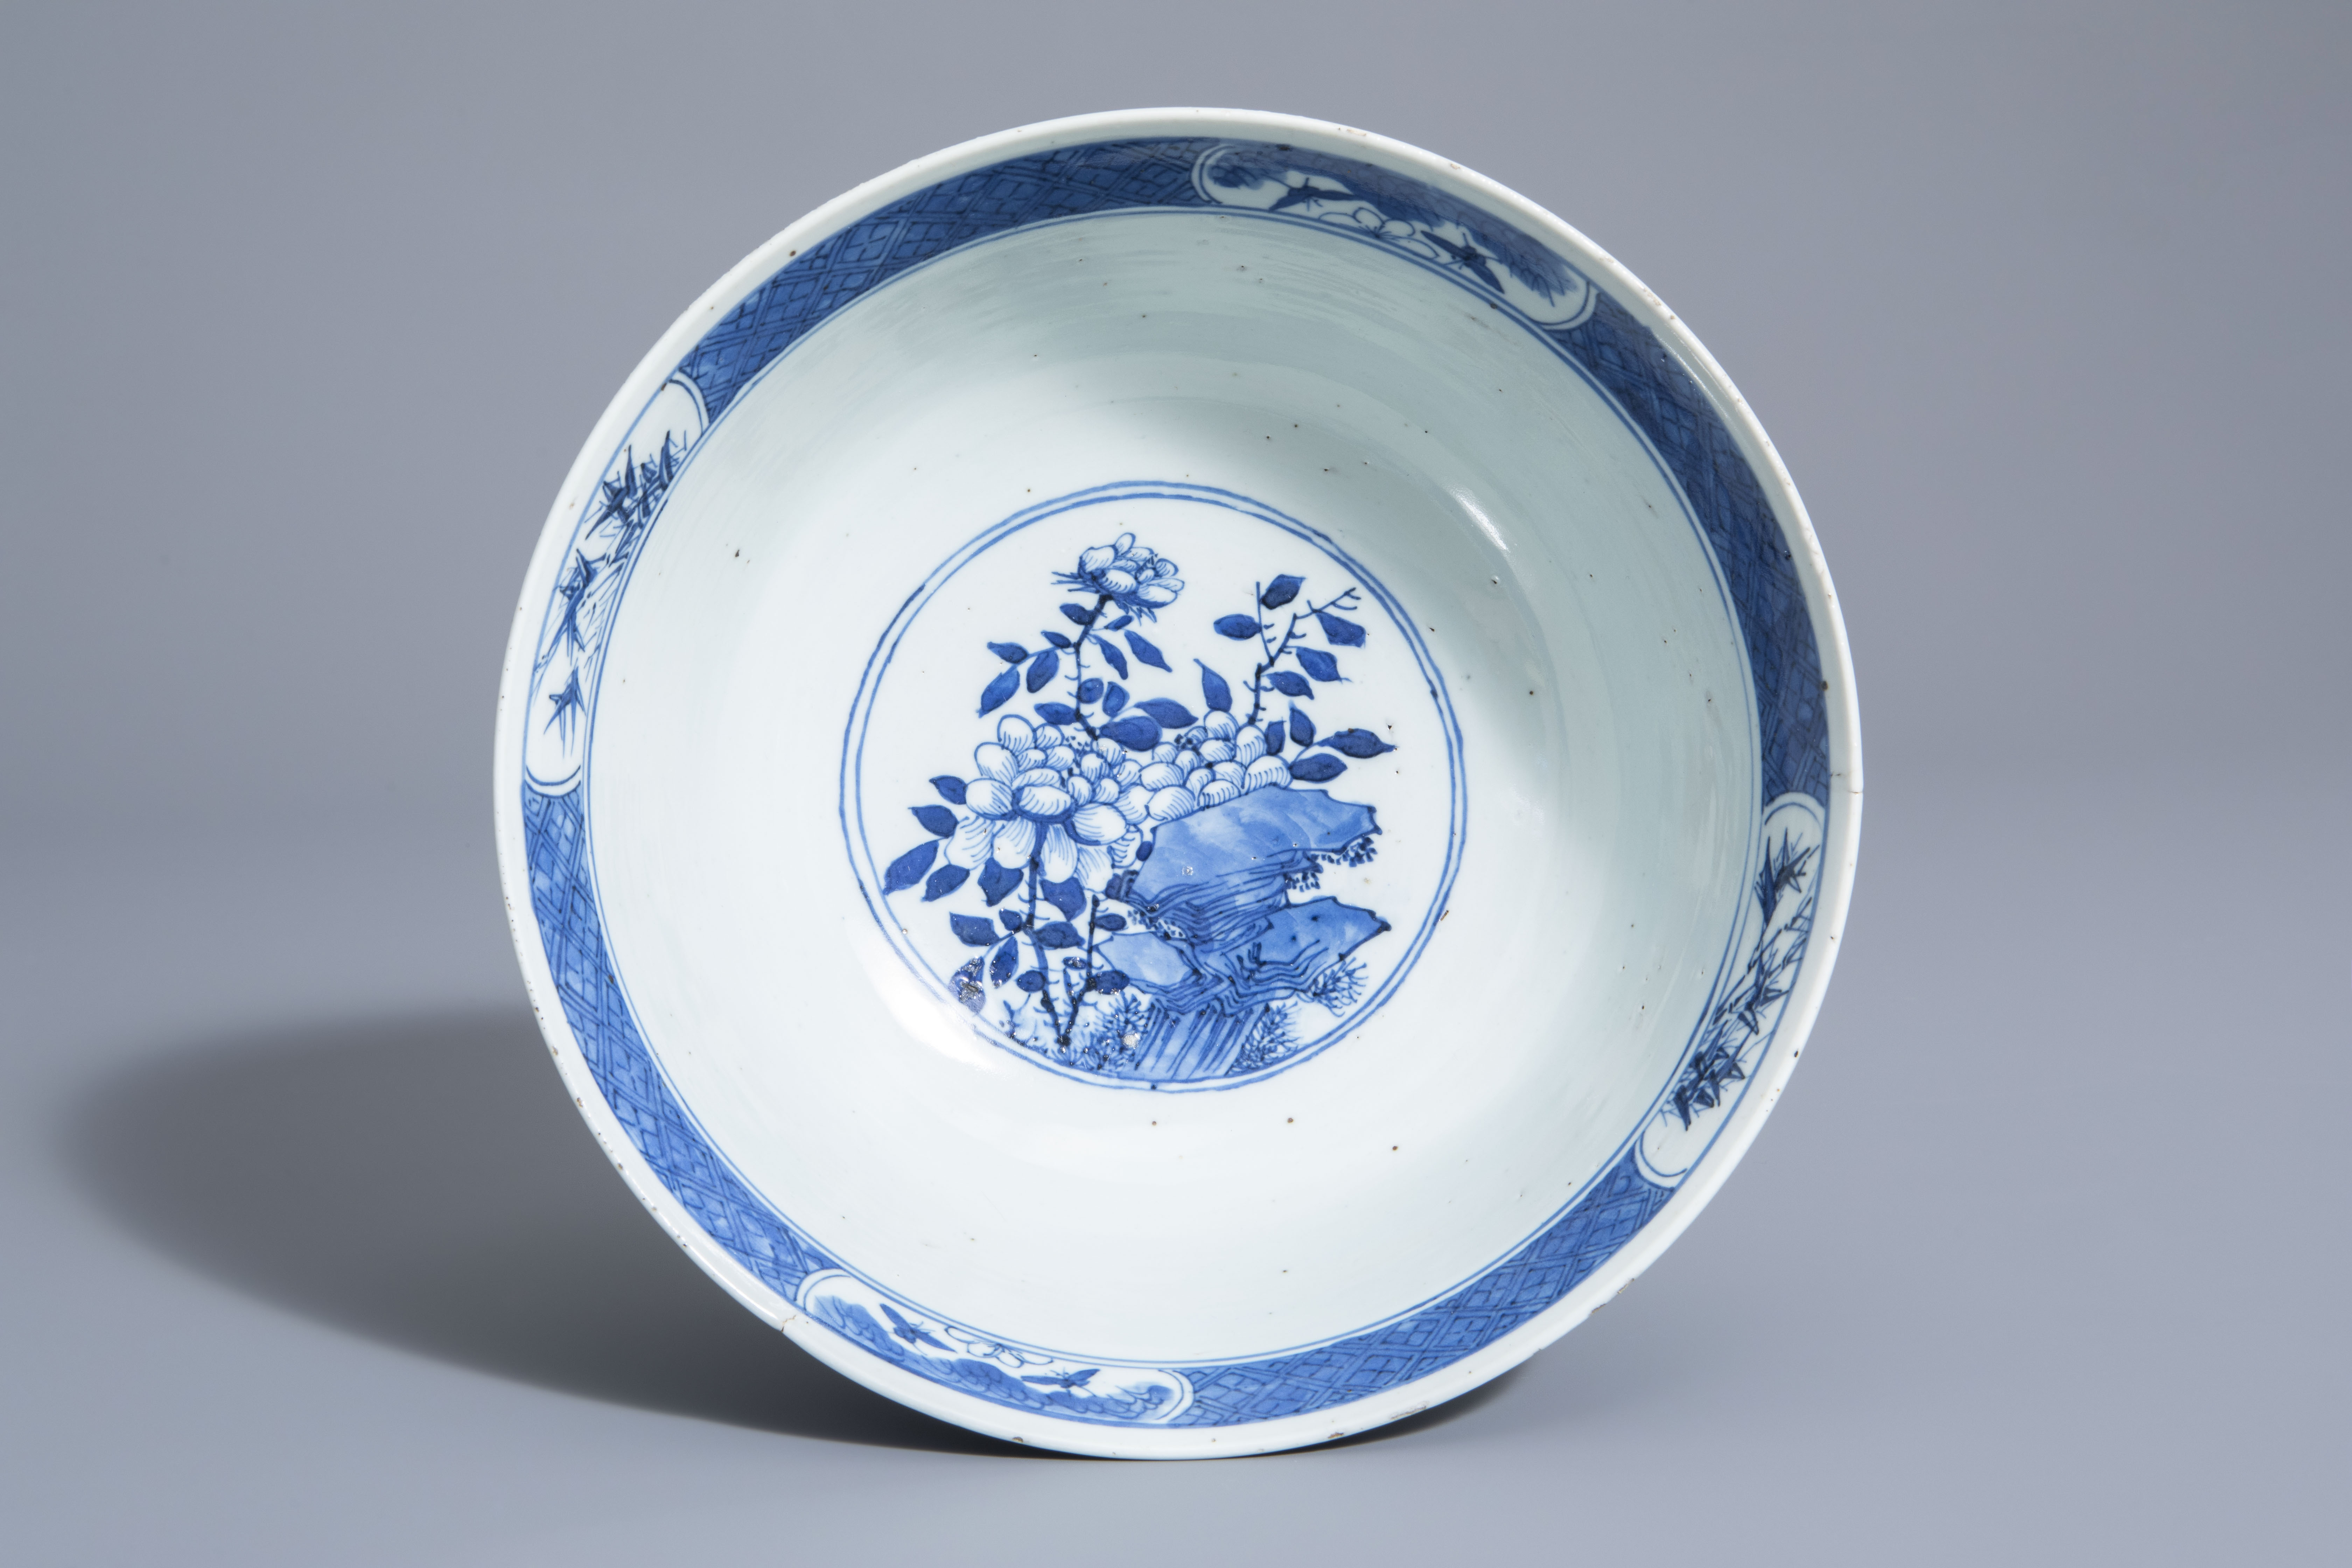 A Chinese blue and white bowl with birds and flowers, 19th C. - Image 6 of 7